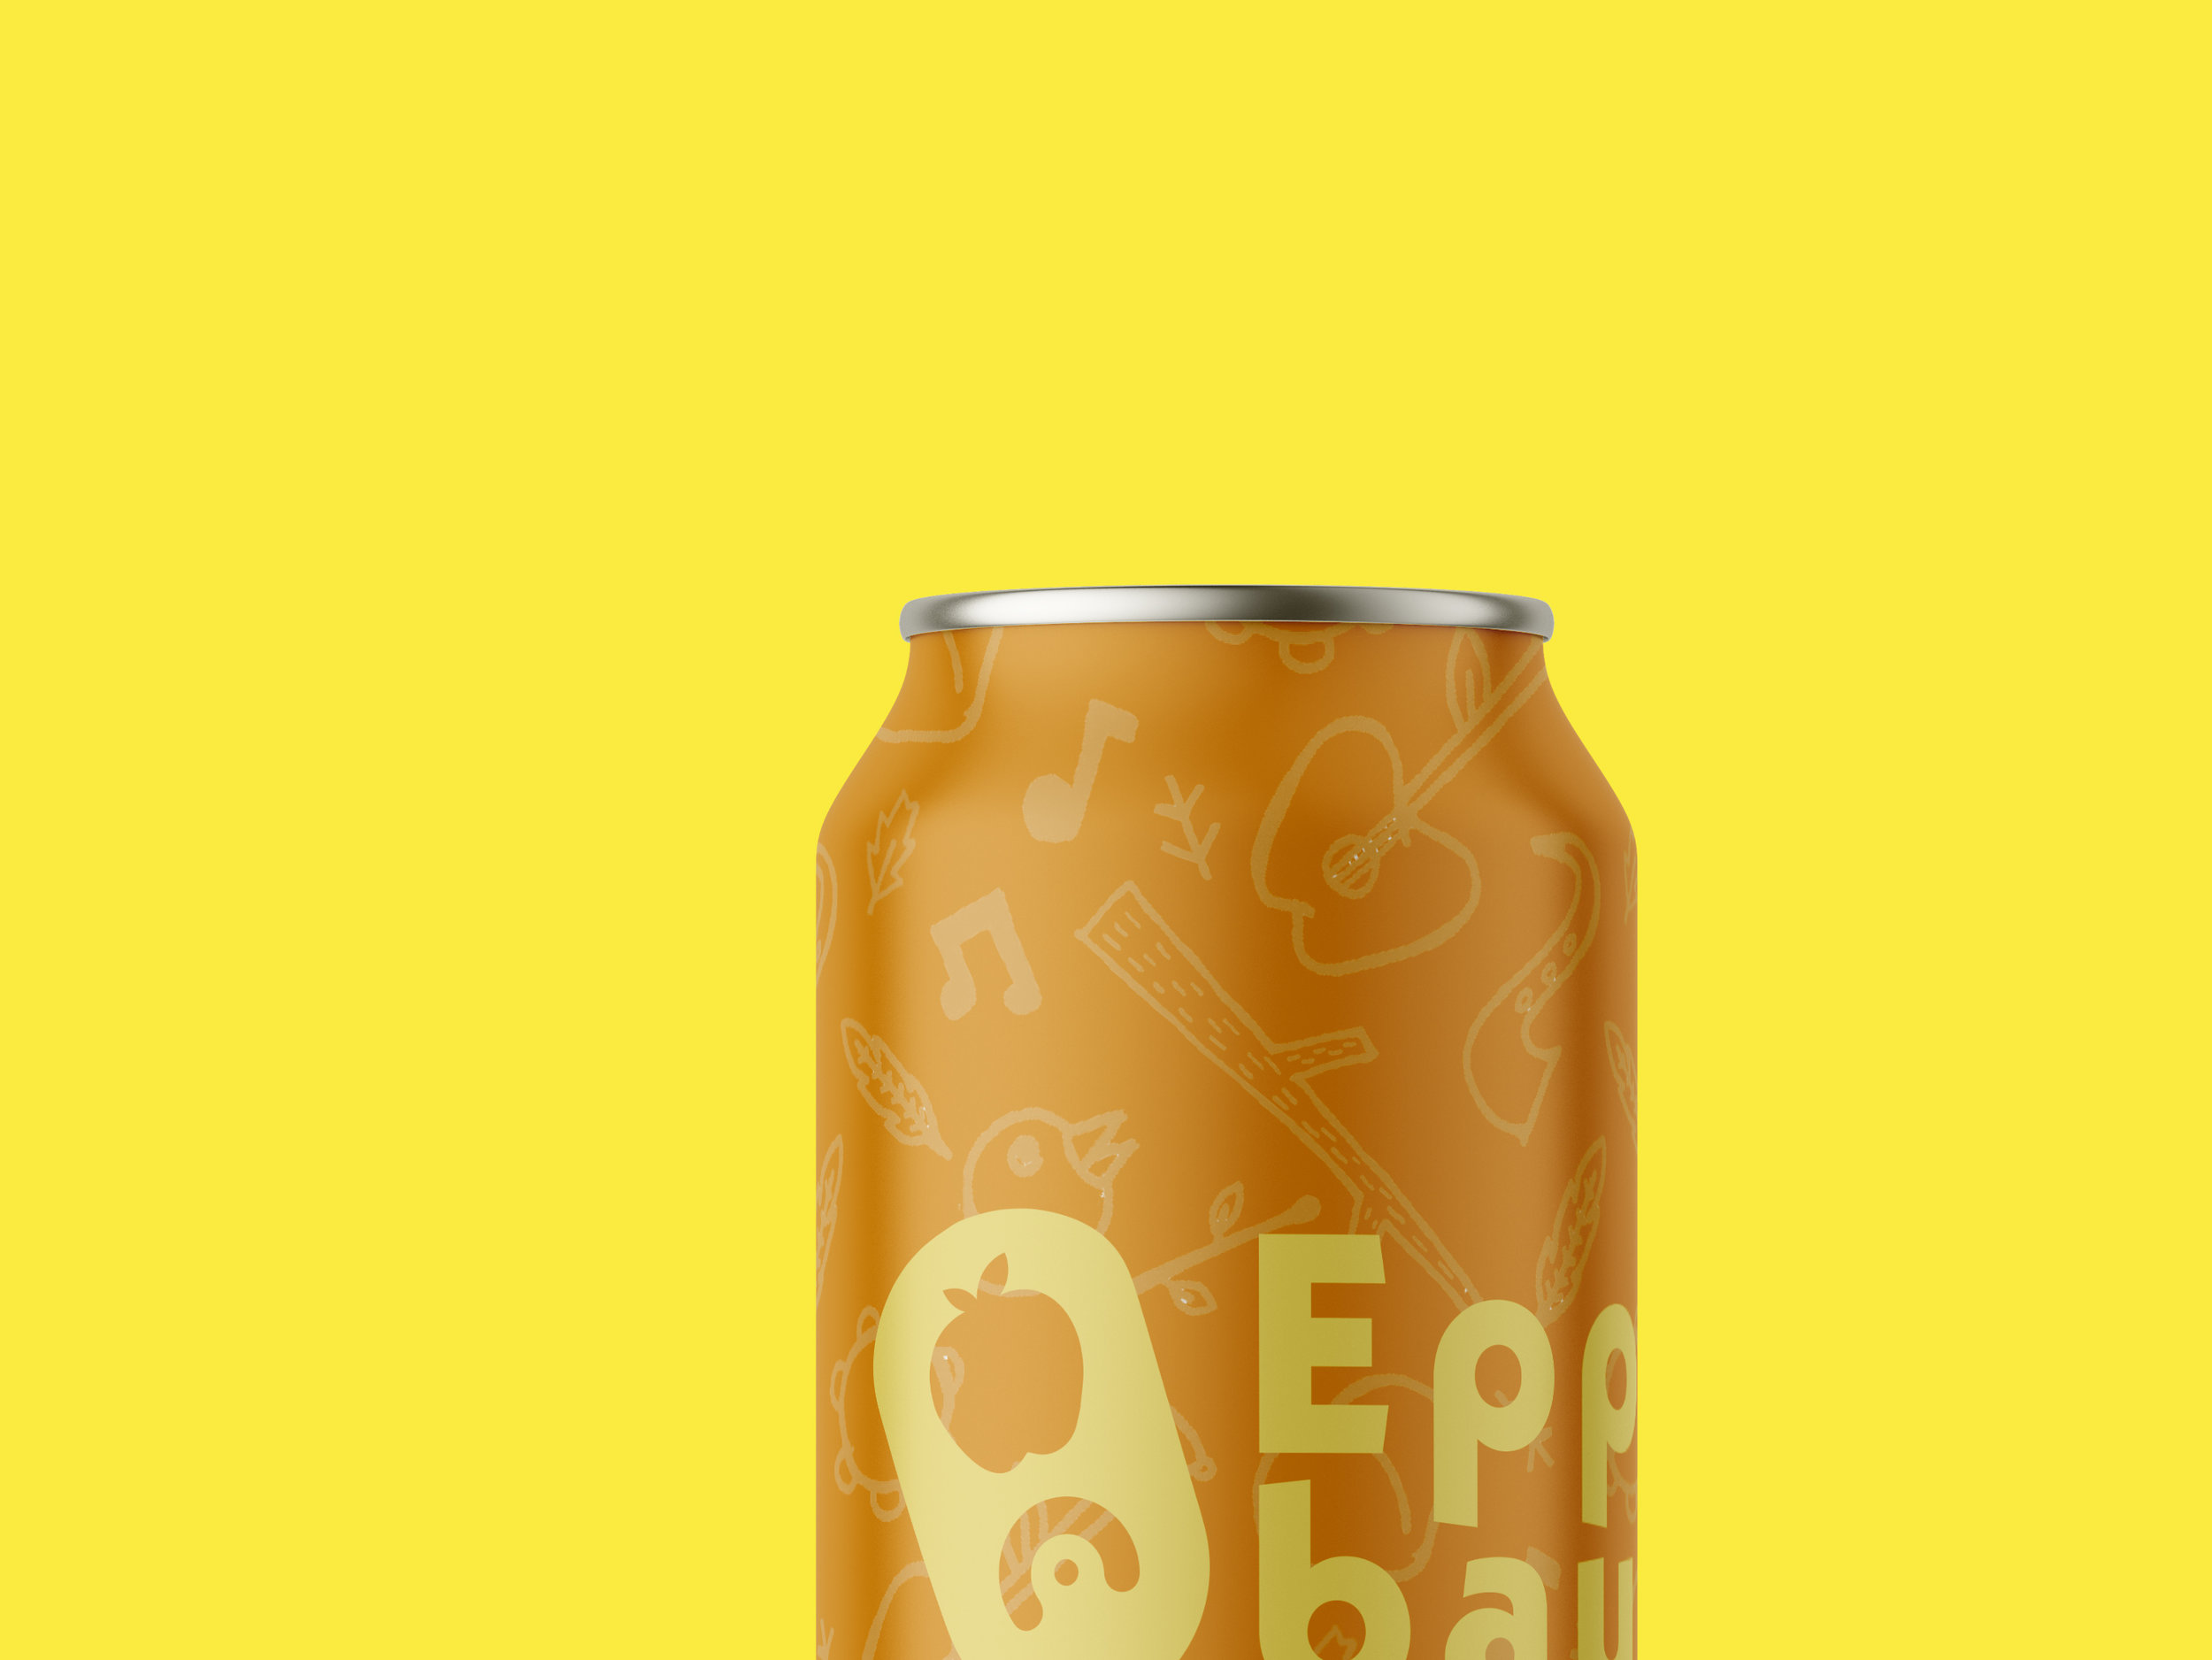 3_CANS_yellow_detail.jpg